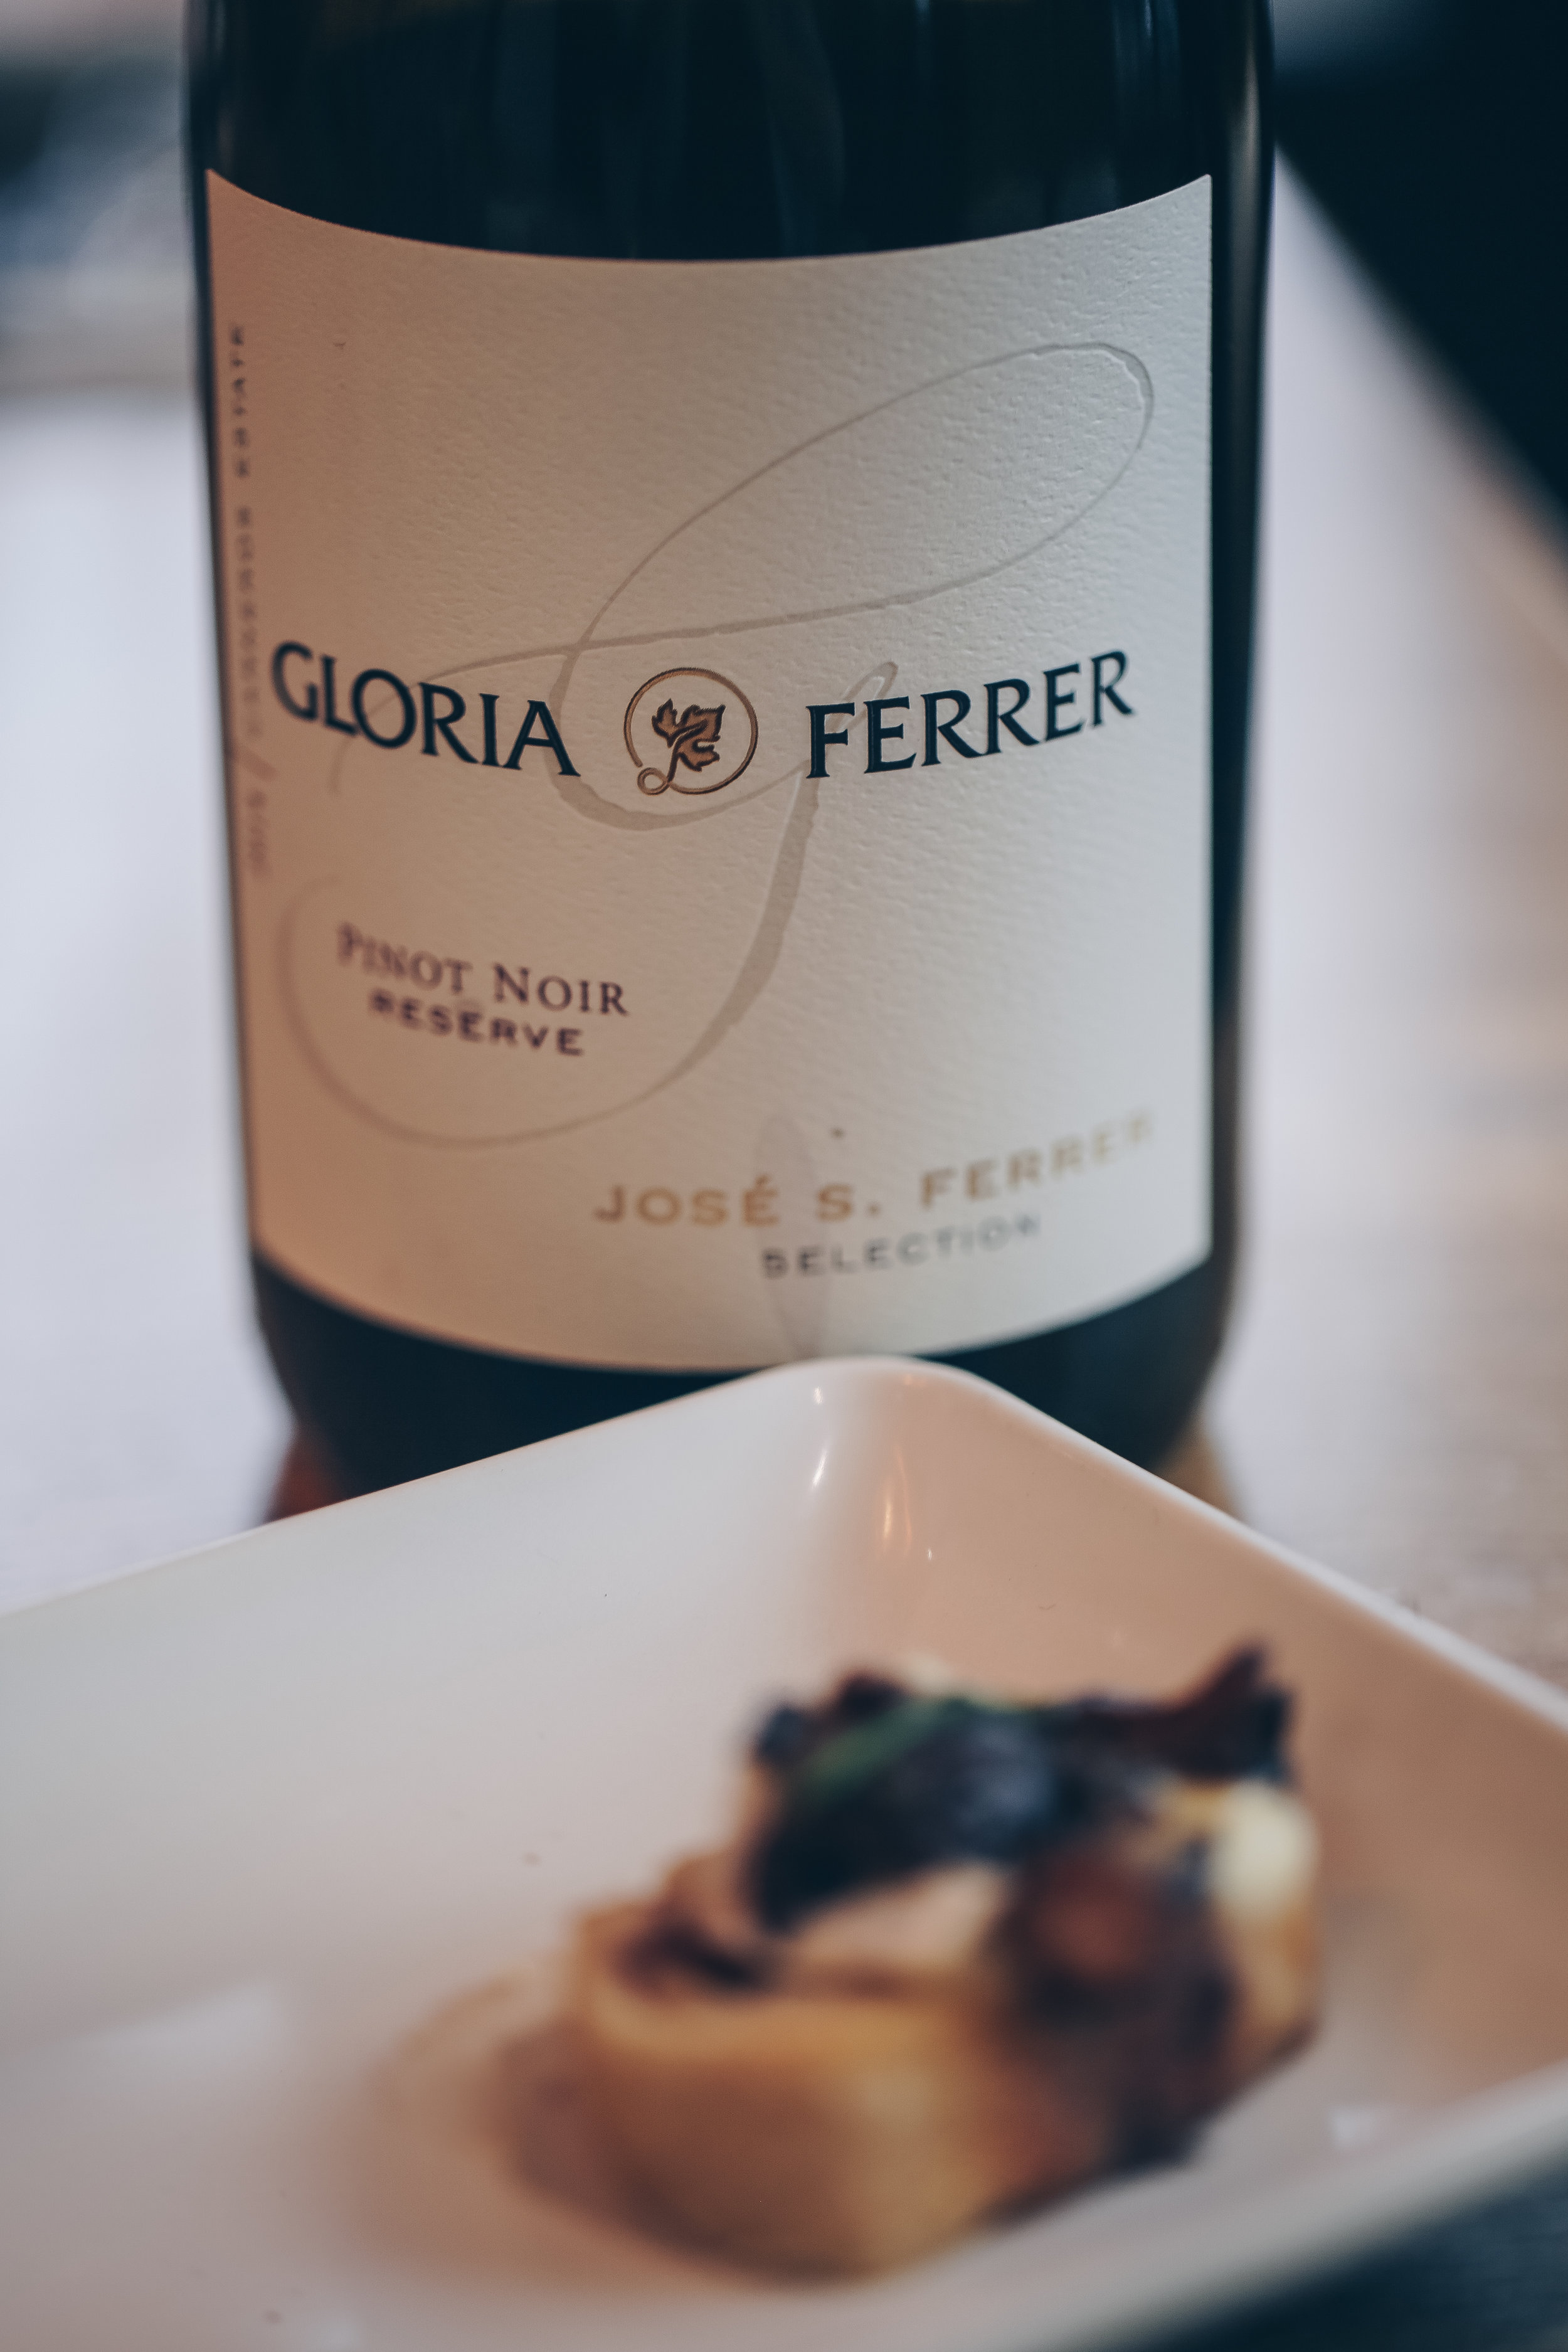 2014 Jose Ferrer Pinot Noir Reserve - A wine club exclusive, this limited production estate red wine delivers silky and spicy notes of cherry. Perfect pairing to a hearty meal.